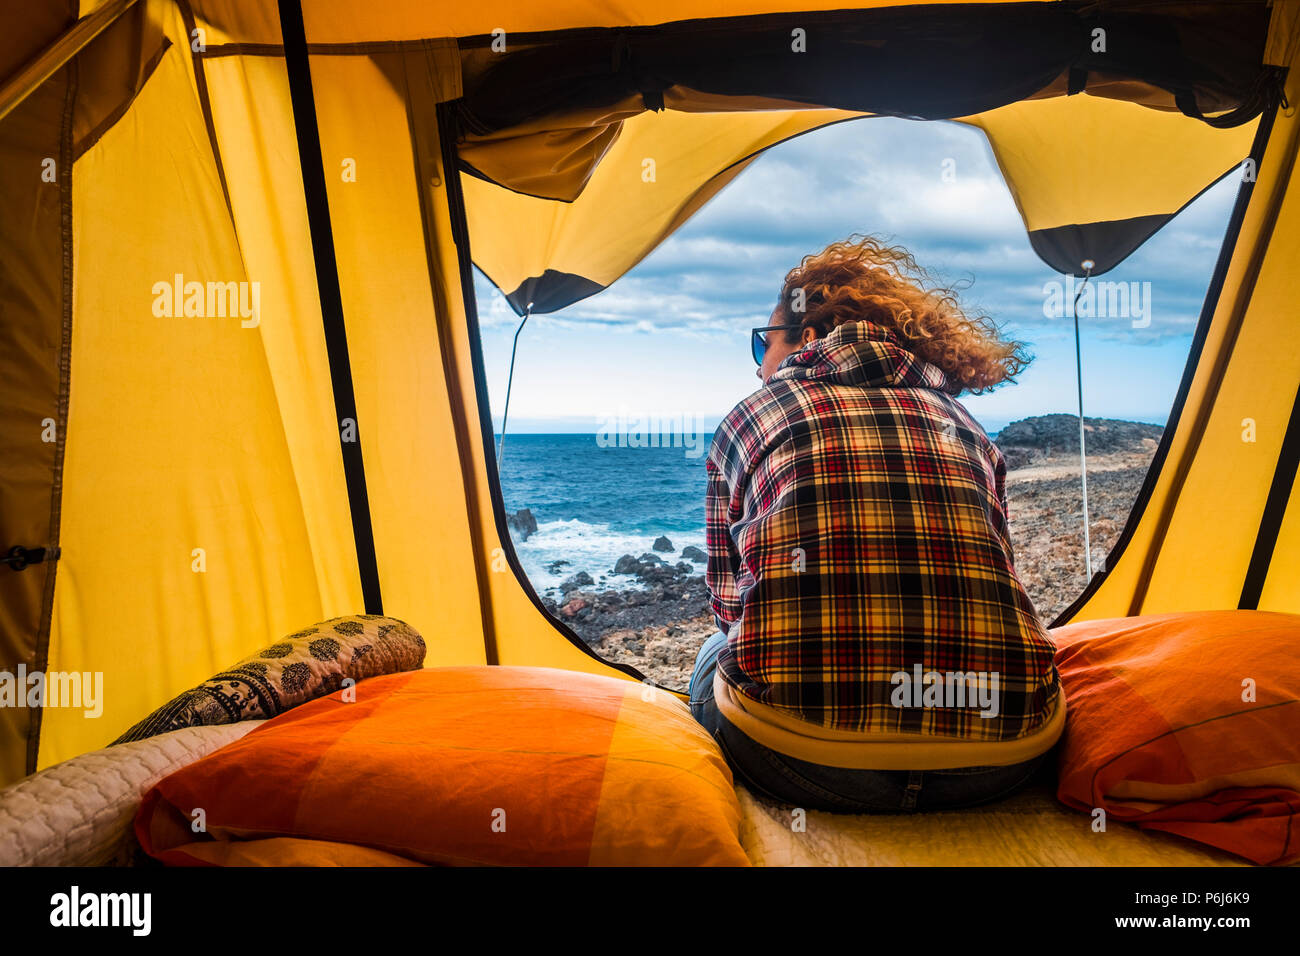 nice woman view from backside sitting outside of a tent mounted on a car. outdoor freedom vacation alternative concept looking ocean out of the door.  - Stock Image